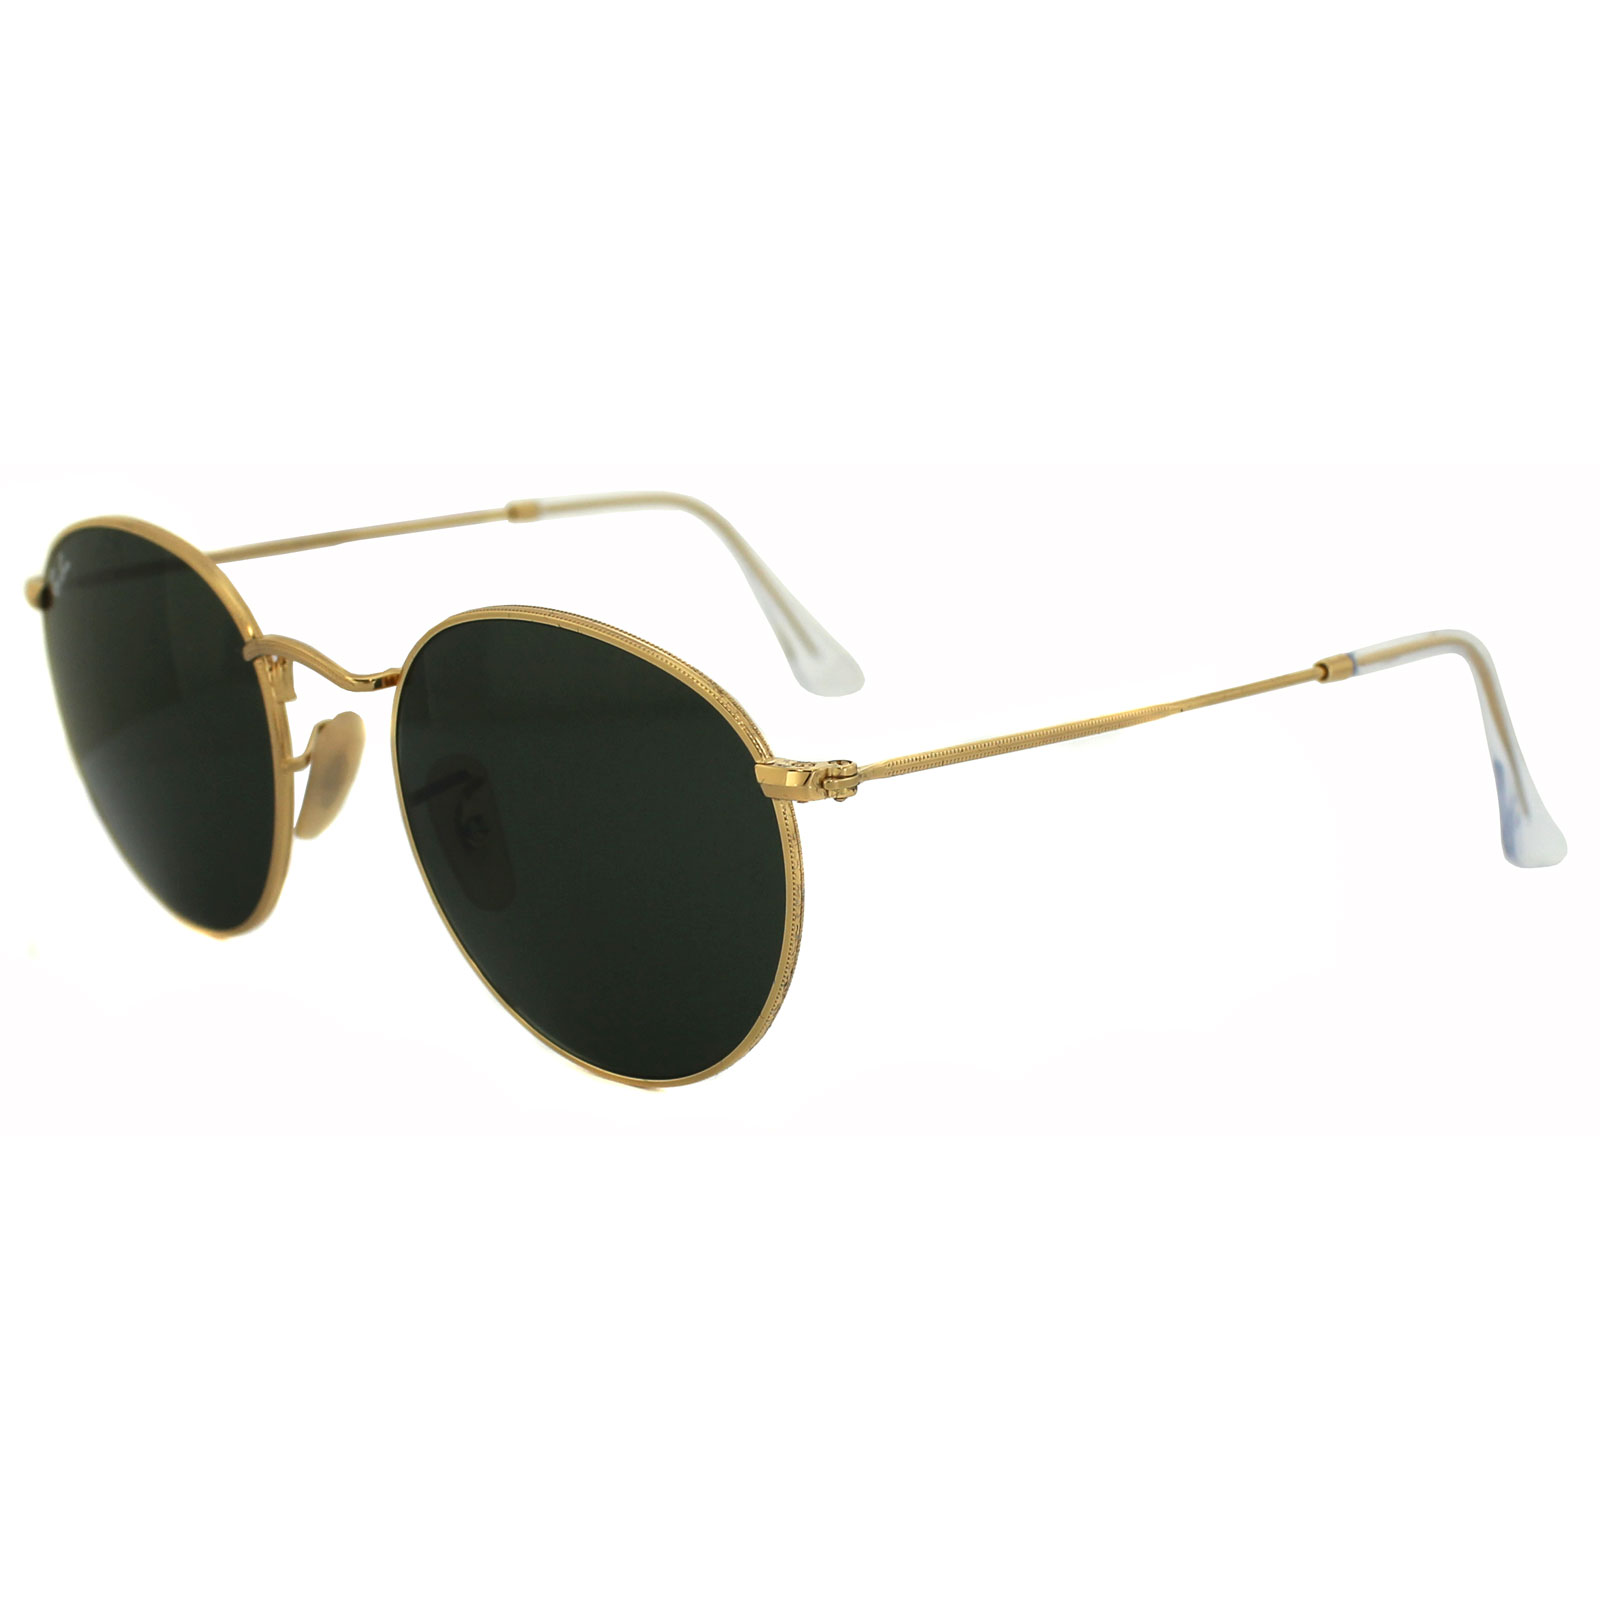 Sentinel Ray-Ban Sunglasses Round Metal 3447 001 Gold Green Medium 50mm a3dad989d567